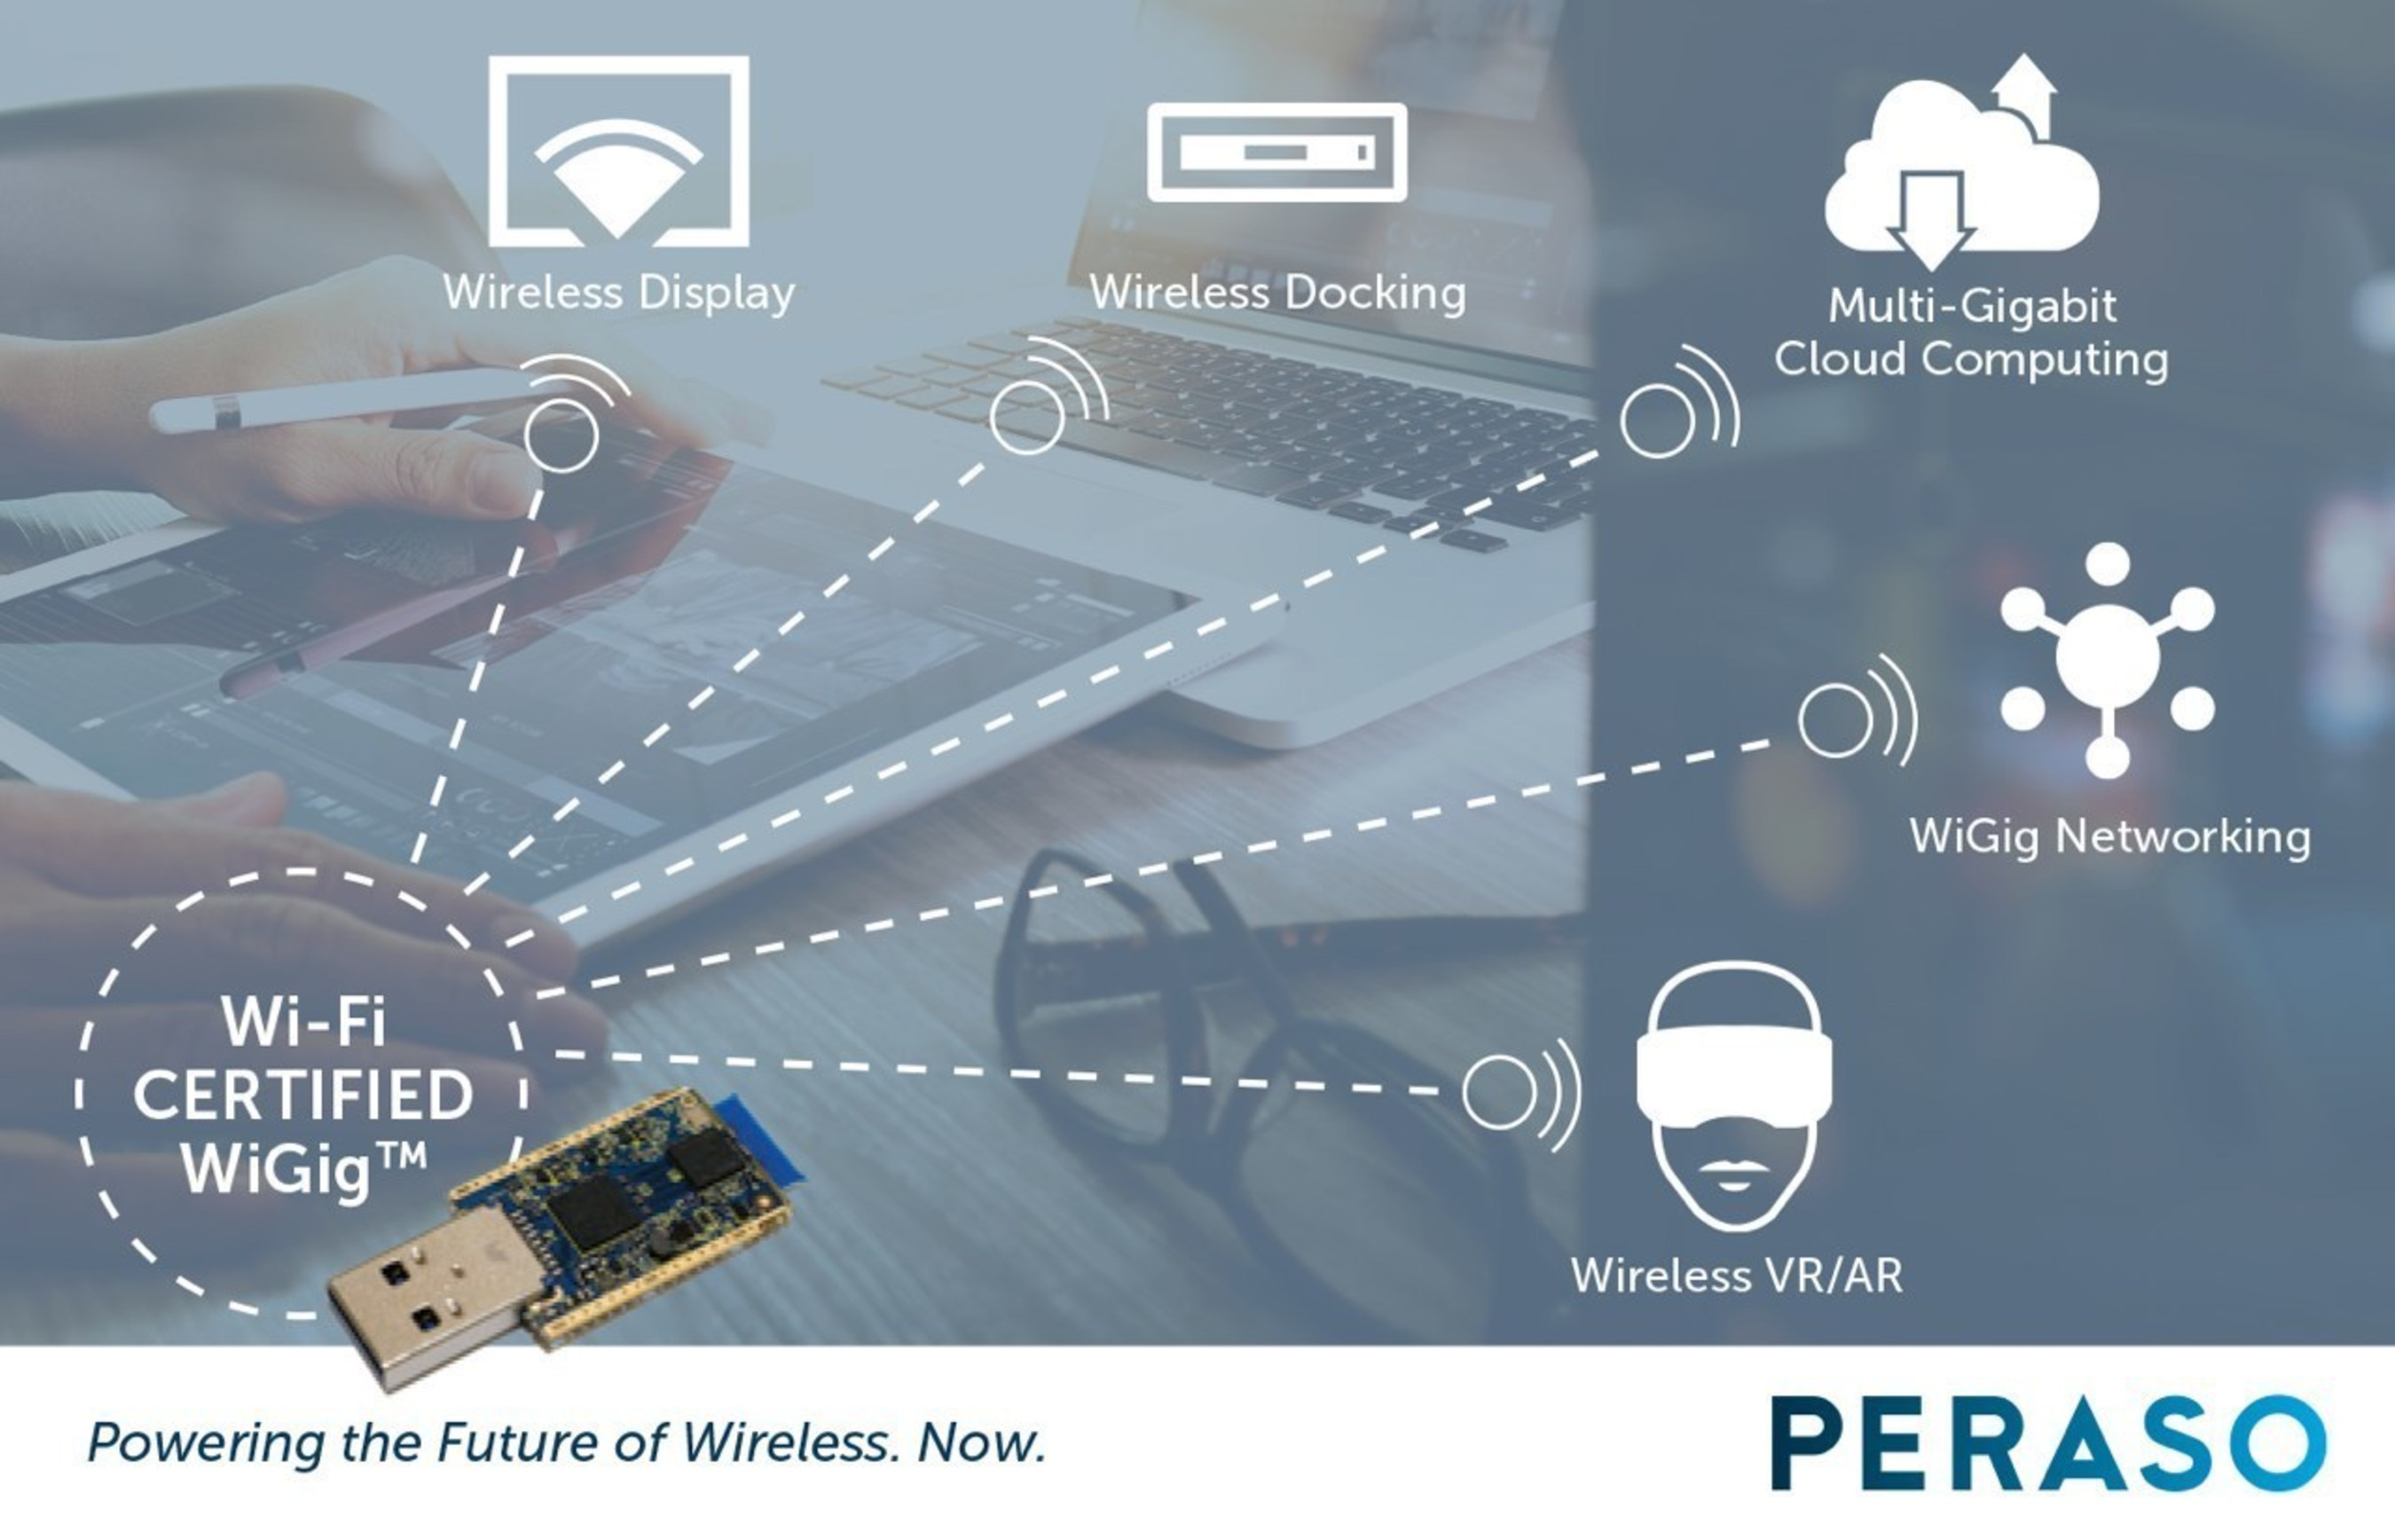 Peraso WiGig(R) USB Adapter Among First Products to Achieve Wi-Fi CERTIFIED  WiGig(TM) status - enabling interoperability for the WiGig ecosystem